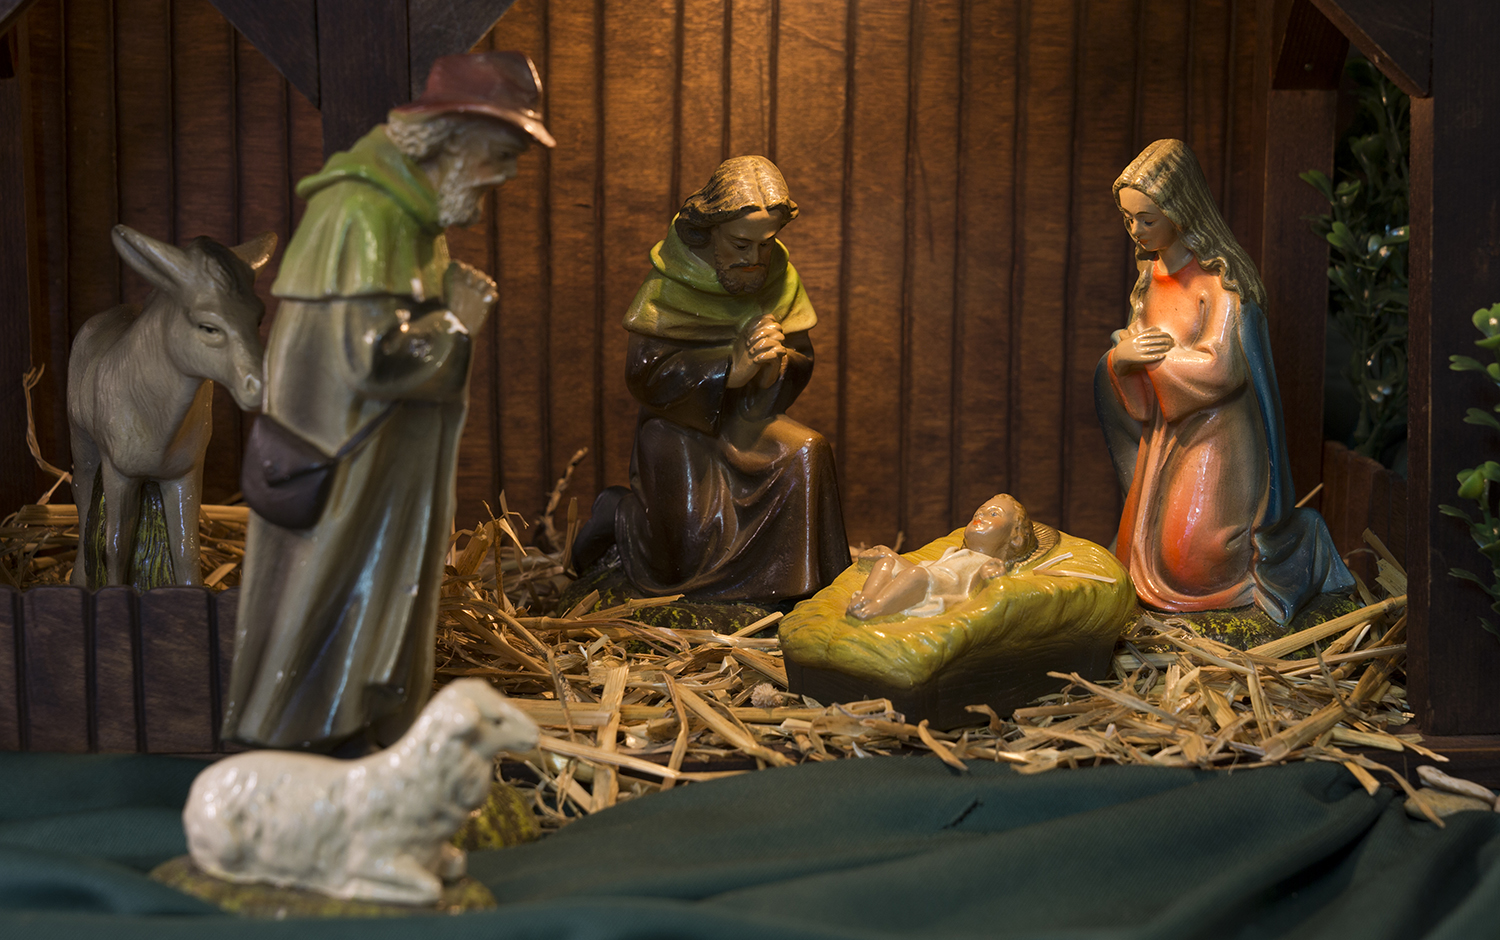 Figure 13:In the years before World War II, Germany was one of the leading exporters of Nativities to the United States. Exports from Germany were discontinued during the war, but production of Nativities resumed immediately thereafter. This Nativity was manufactured in the British Zone of Occupation in northern Germany and exported to the United States between 1945 and 1949. It was used during the Christmas season by a family in Newark, New Jersey, for at least 50 years. The set was displayed in the living room, either under the Christmas tree or on a nearby table.